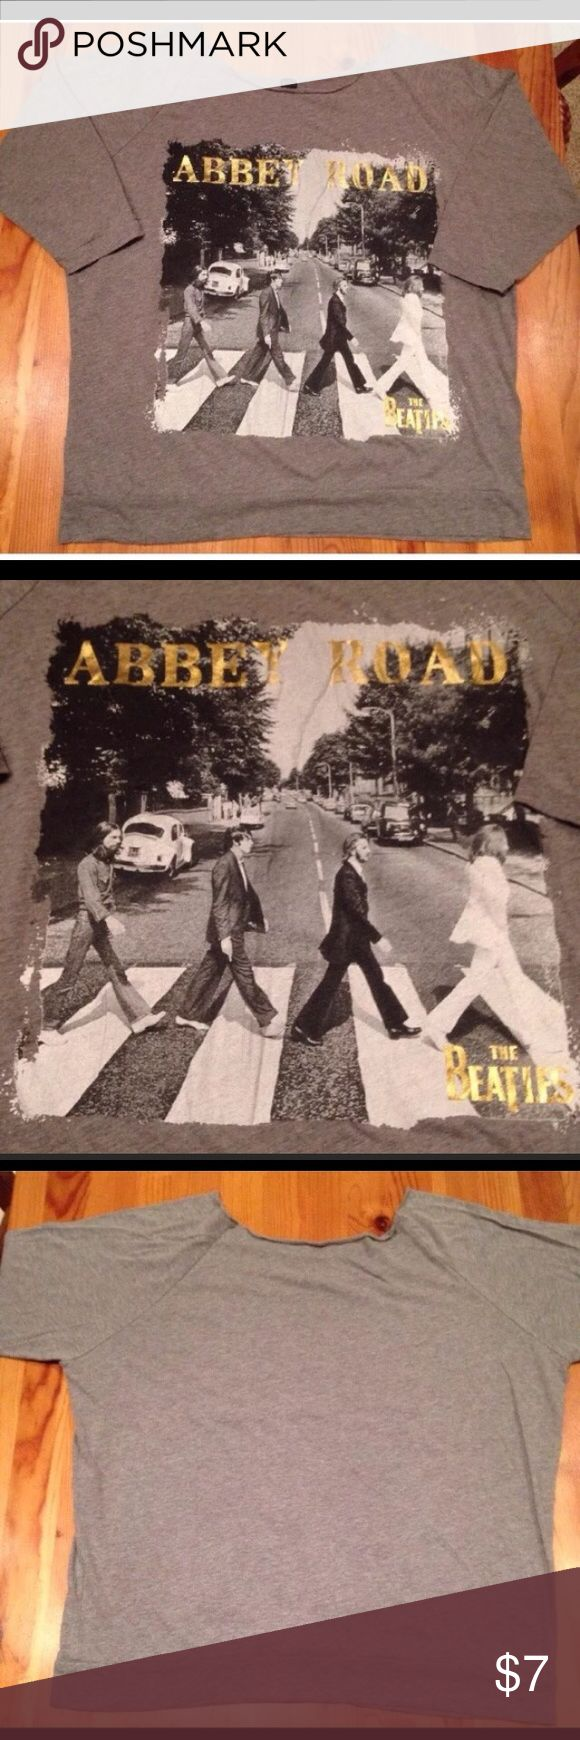 "BEATLES 🎸 ABBEY ROAD T-SHIRT Women's L/XL Pre-owned vintage gray Beatles ""Abbey Road"" t-shirt. Size women's L. Chest: 23"" across lying flat pit to pit. Length: 24.5"". Metallic gold lettering. Material: 60/40 poly/cotton. APPLE CORPS Tops Tees - Short Sleeve"